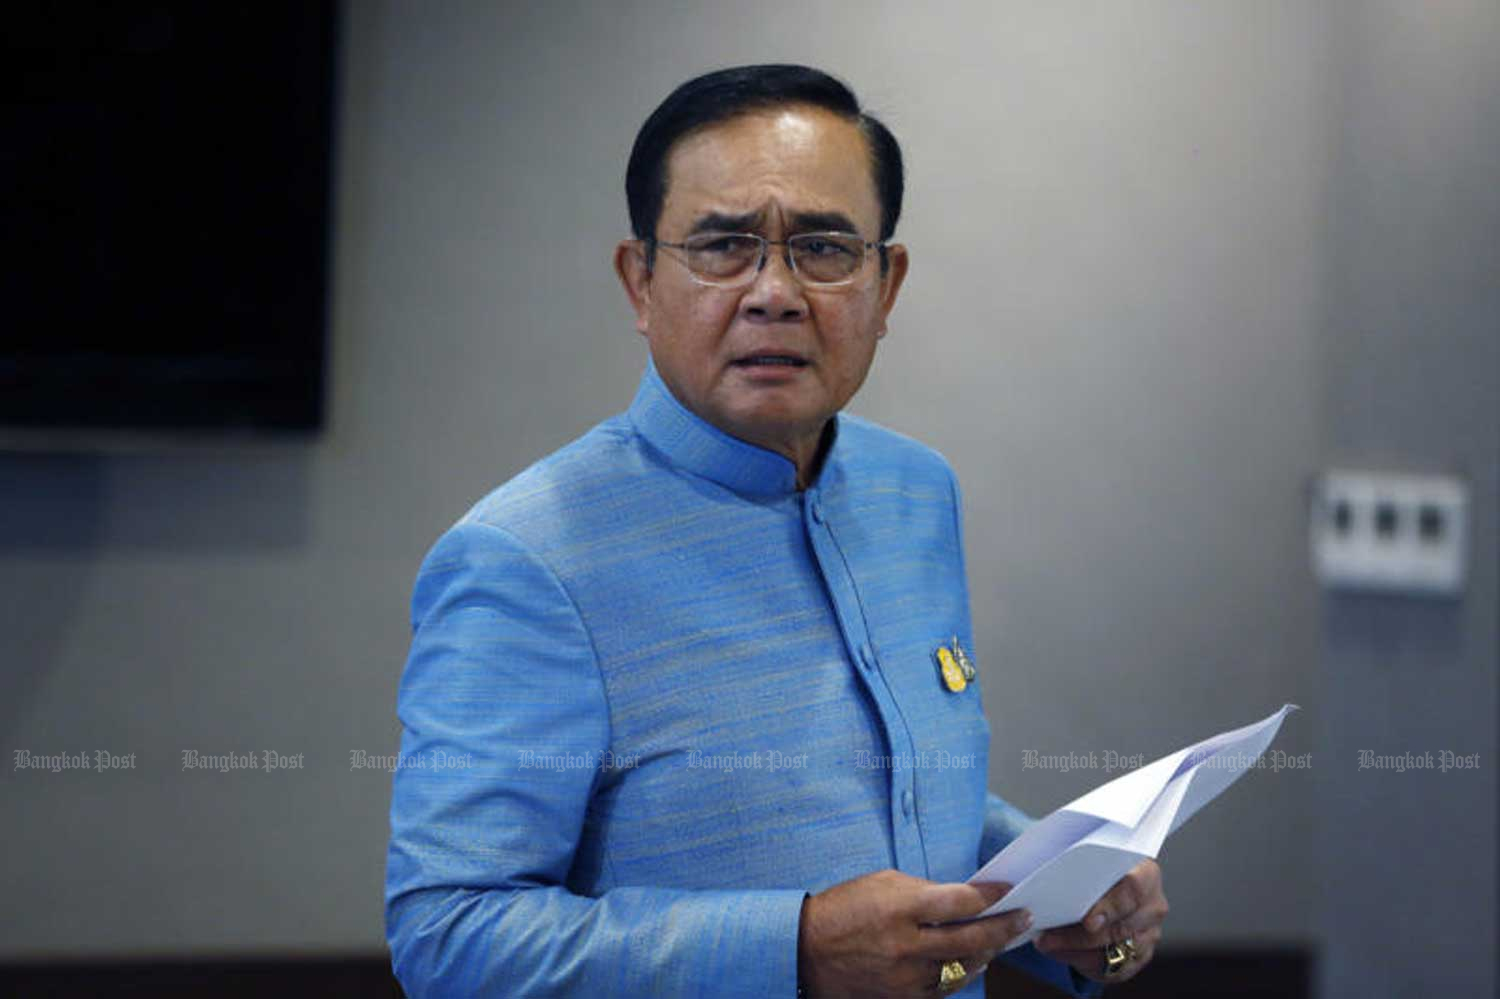 Prime Minister Prayut Chan-o-cha speaks to reporters after a cabinet meeting at Government House in Bangkok on Tuesday. (Photo by Pornprom Satrabhaya)